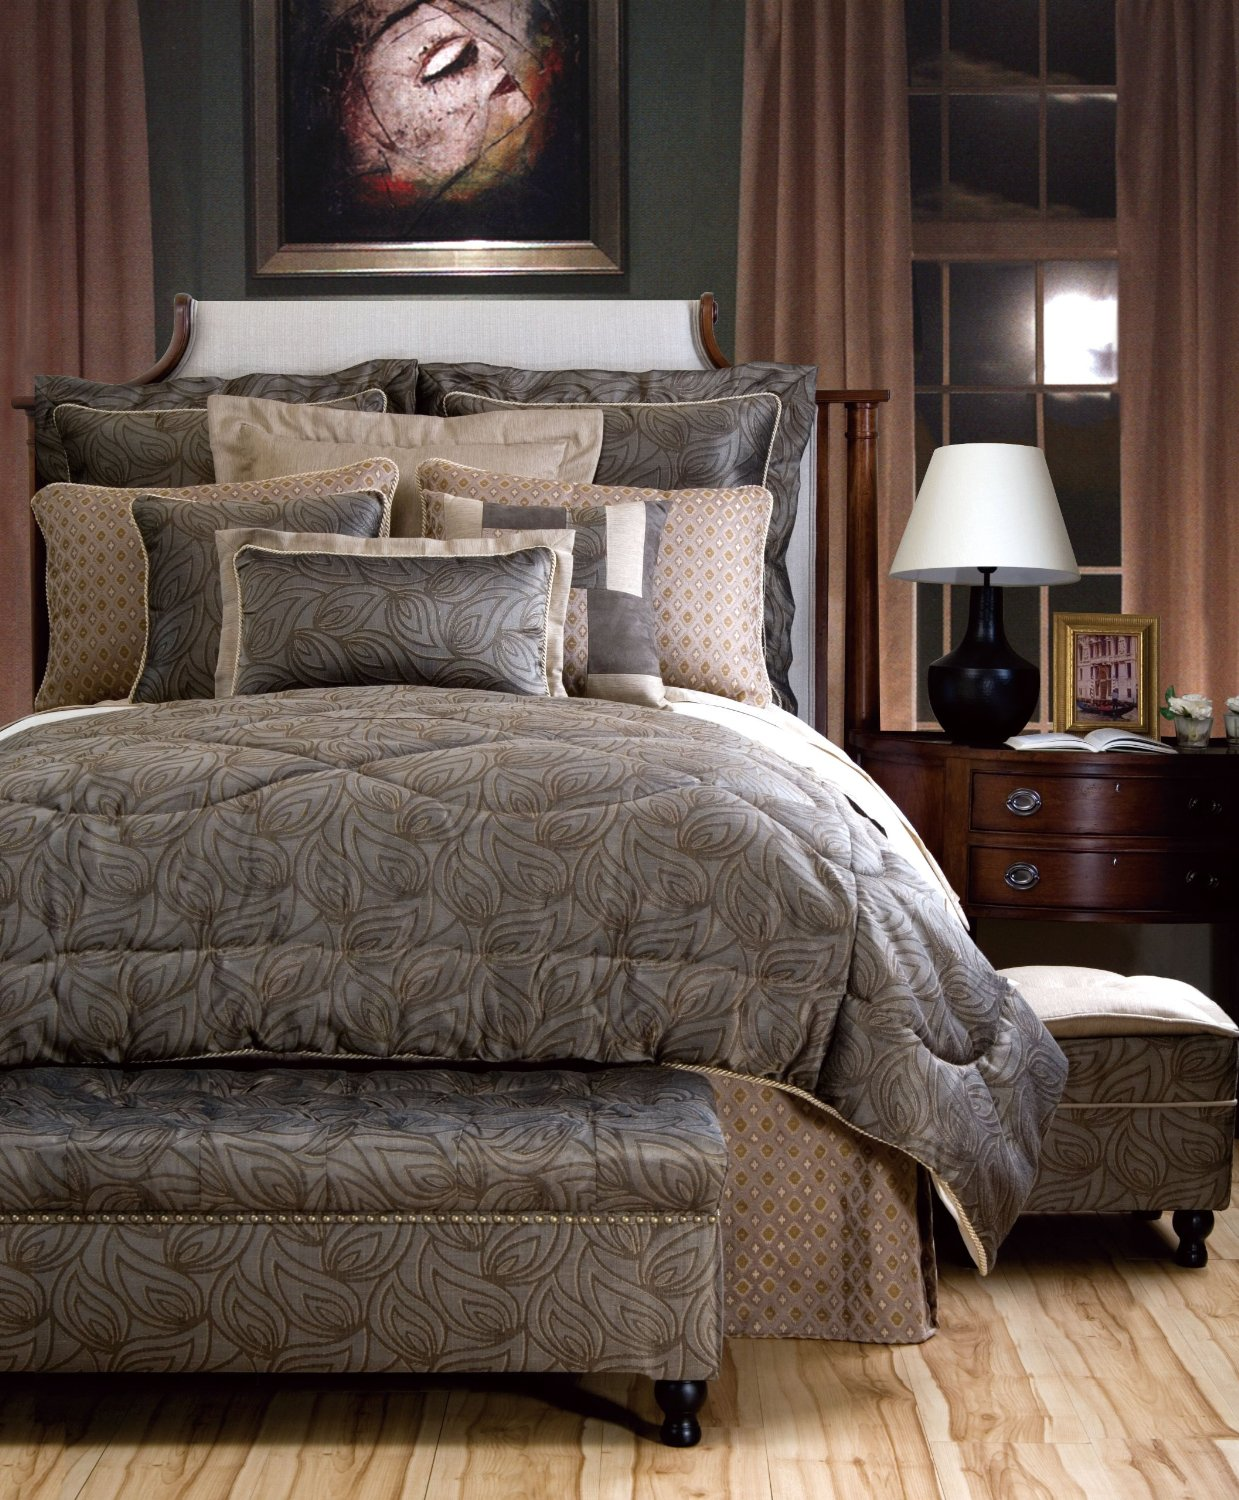 Upscale bedding for master bedroom modern diy art design collection Master bedroom bed linens